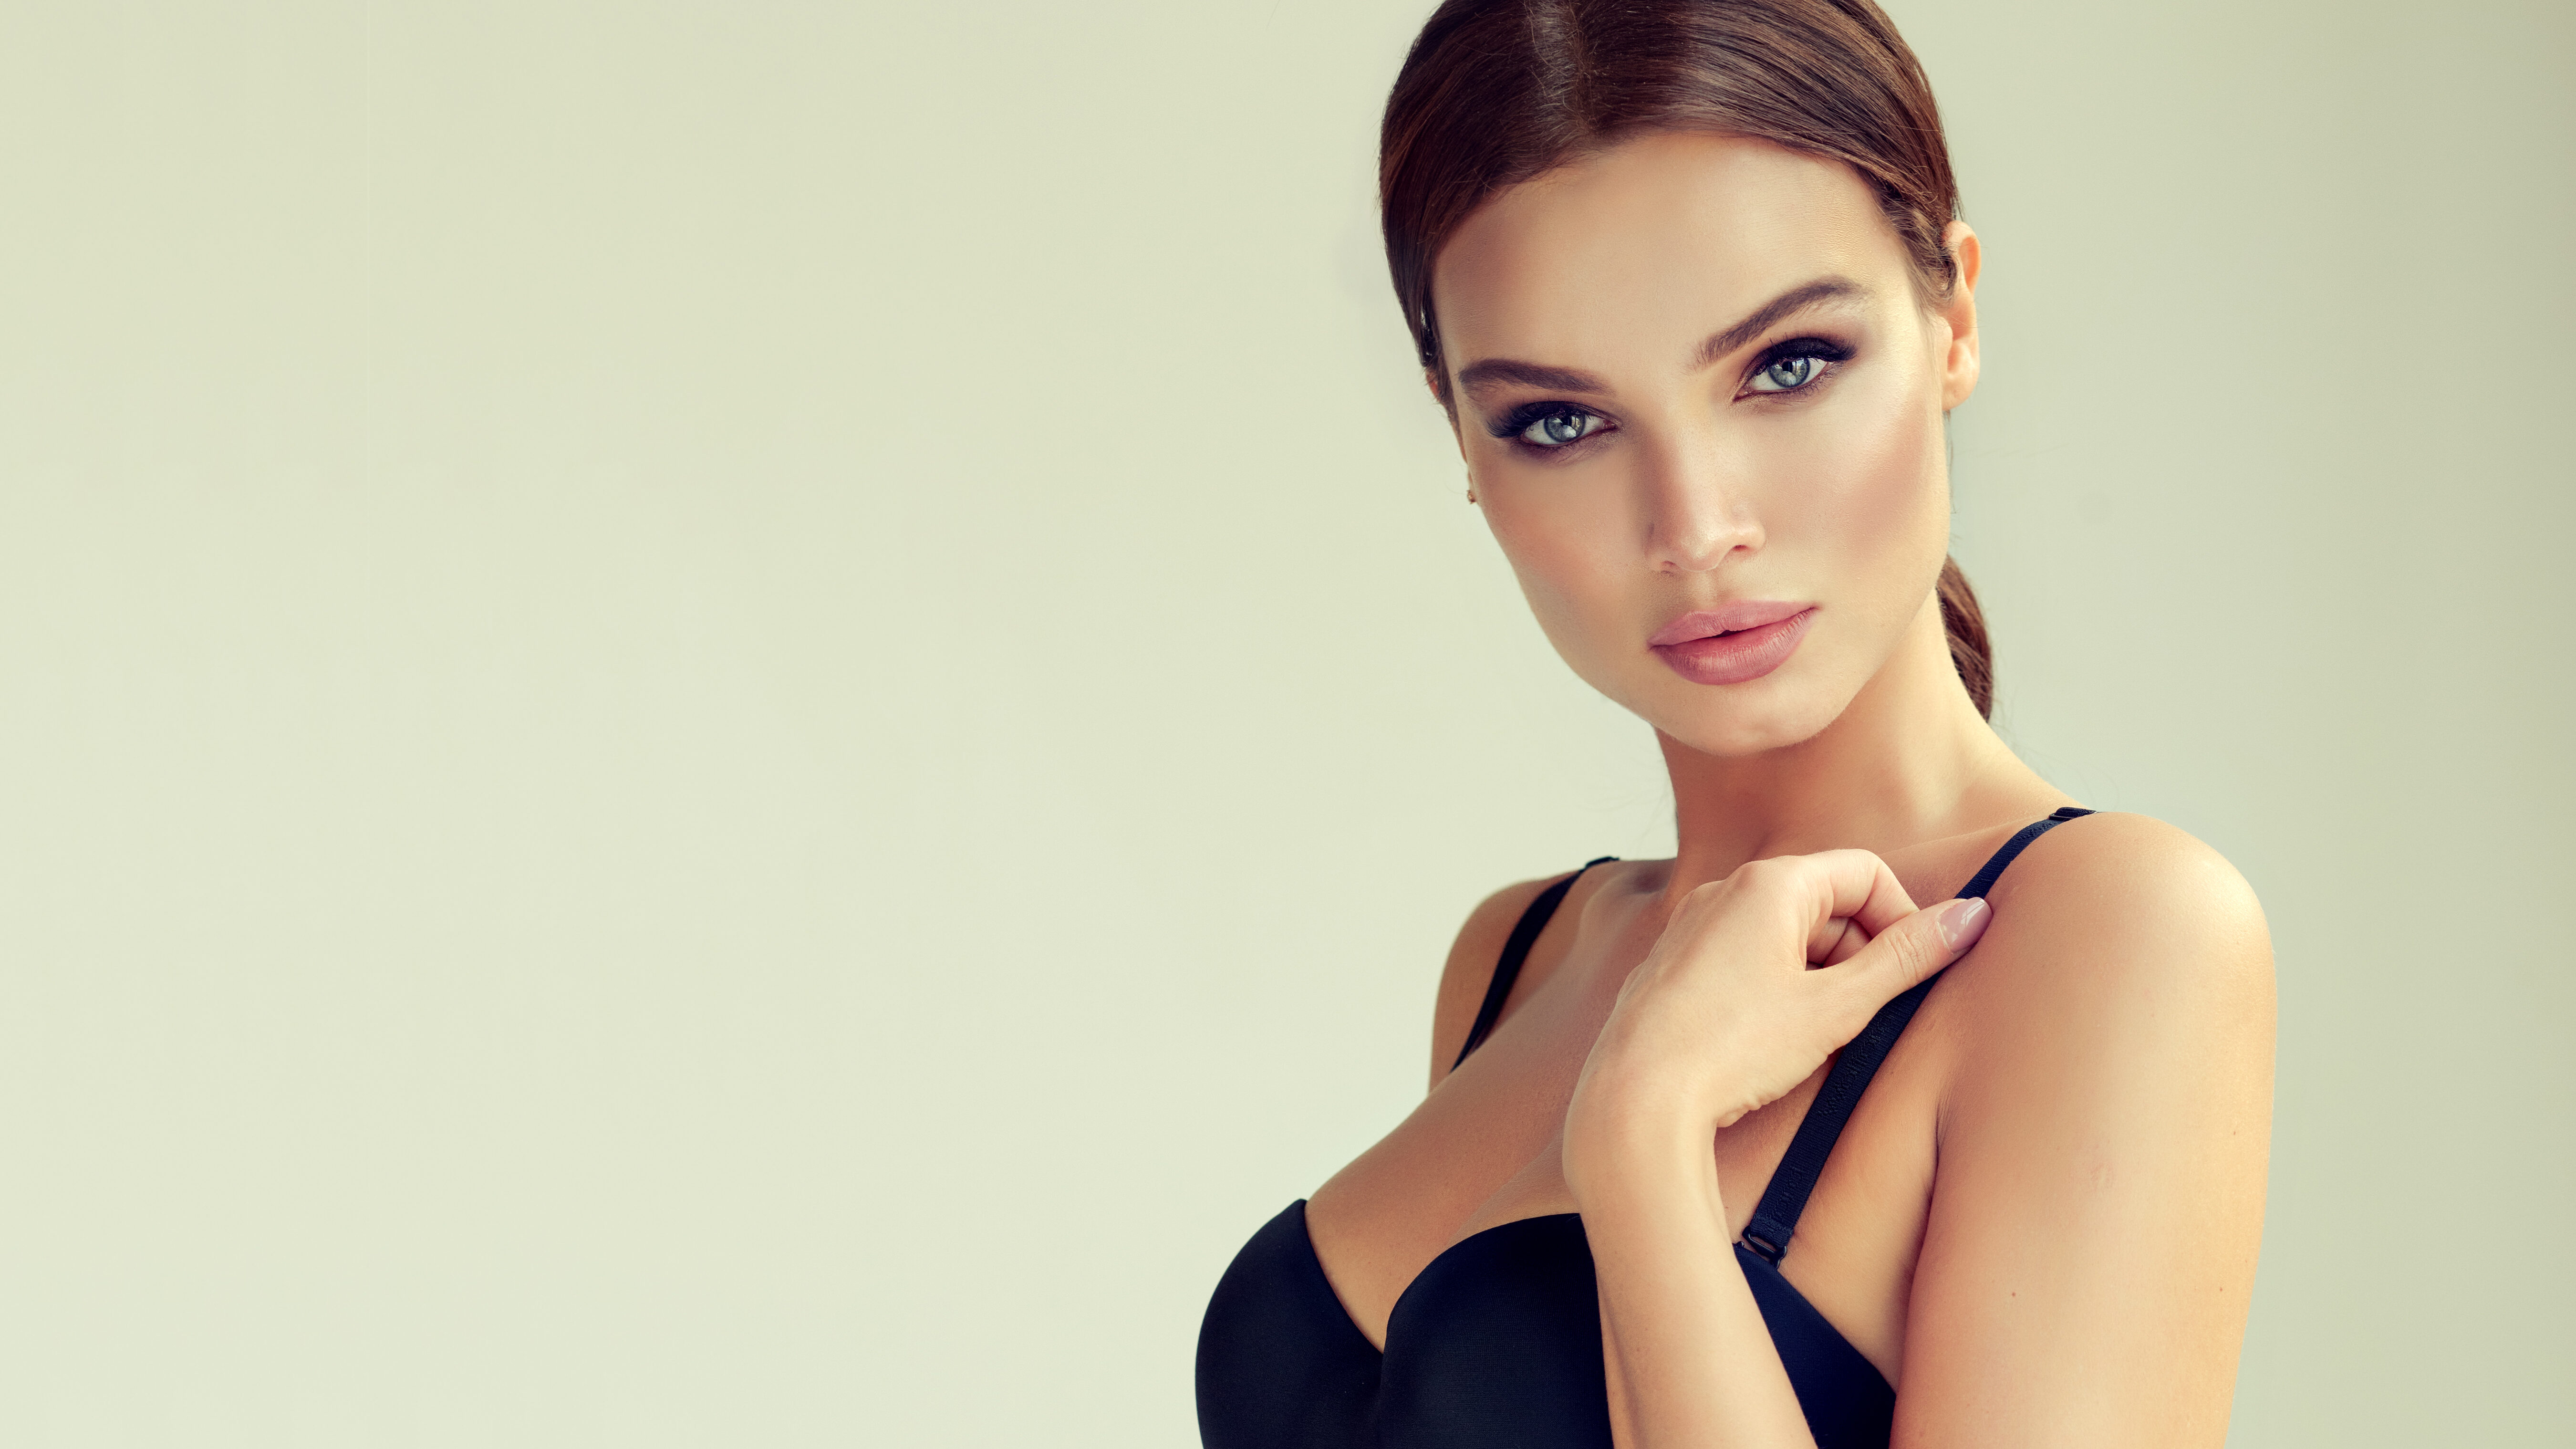 Portrait of young, beautiful woman dressed in seductive black body. Tender and tempting look on viewer. Smokey-eyes style bright makeup and hair gathered in a tuft. Makeup and cosmetology.